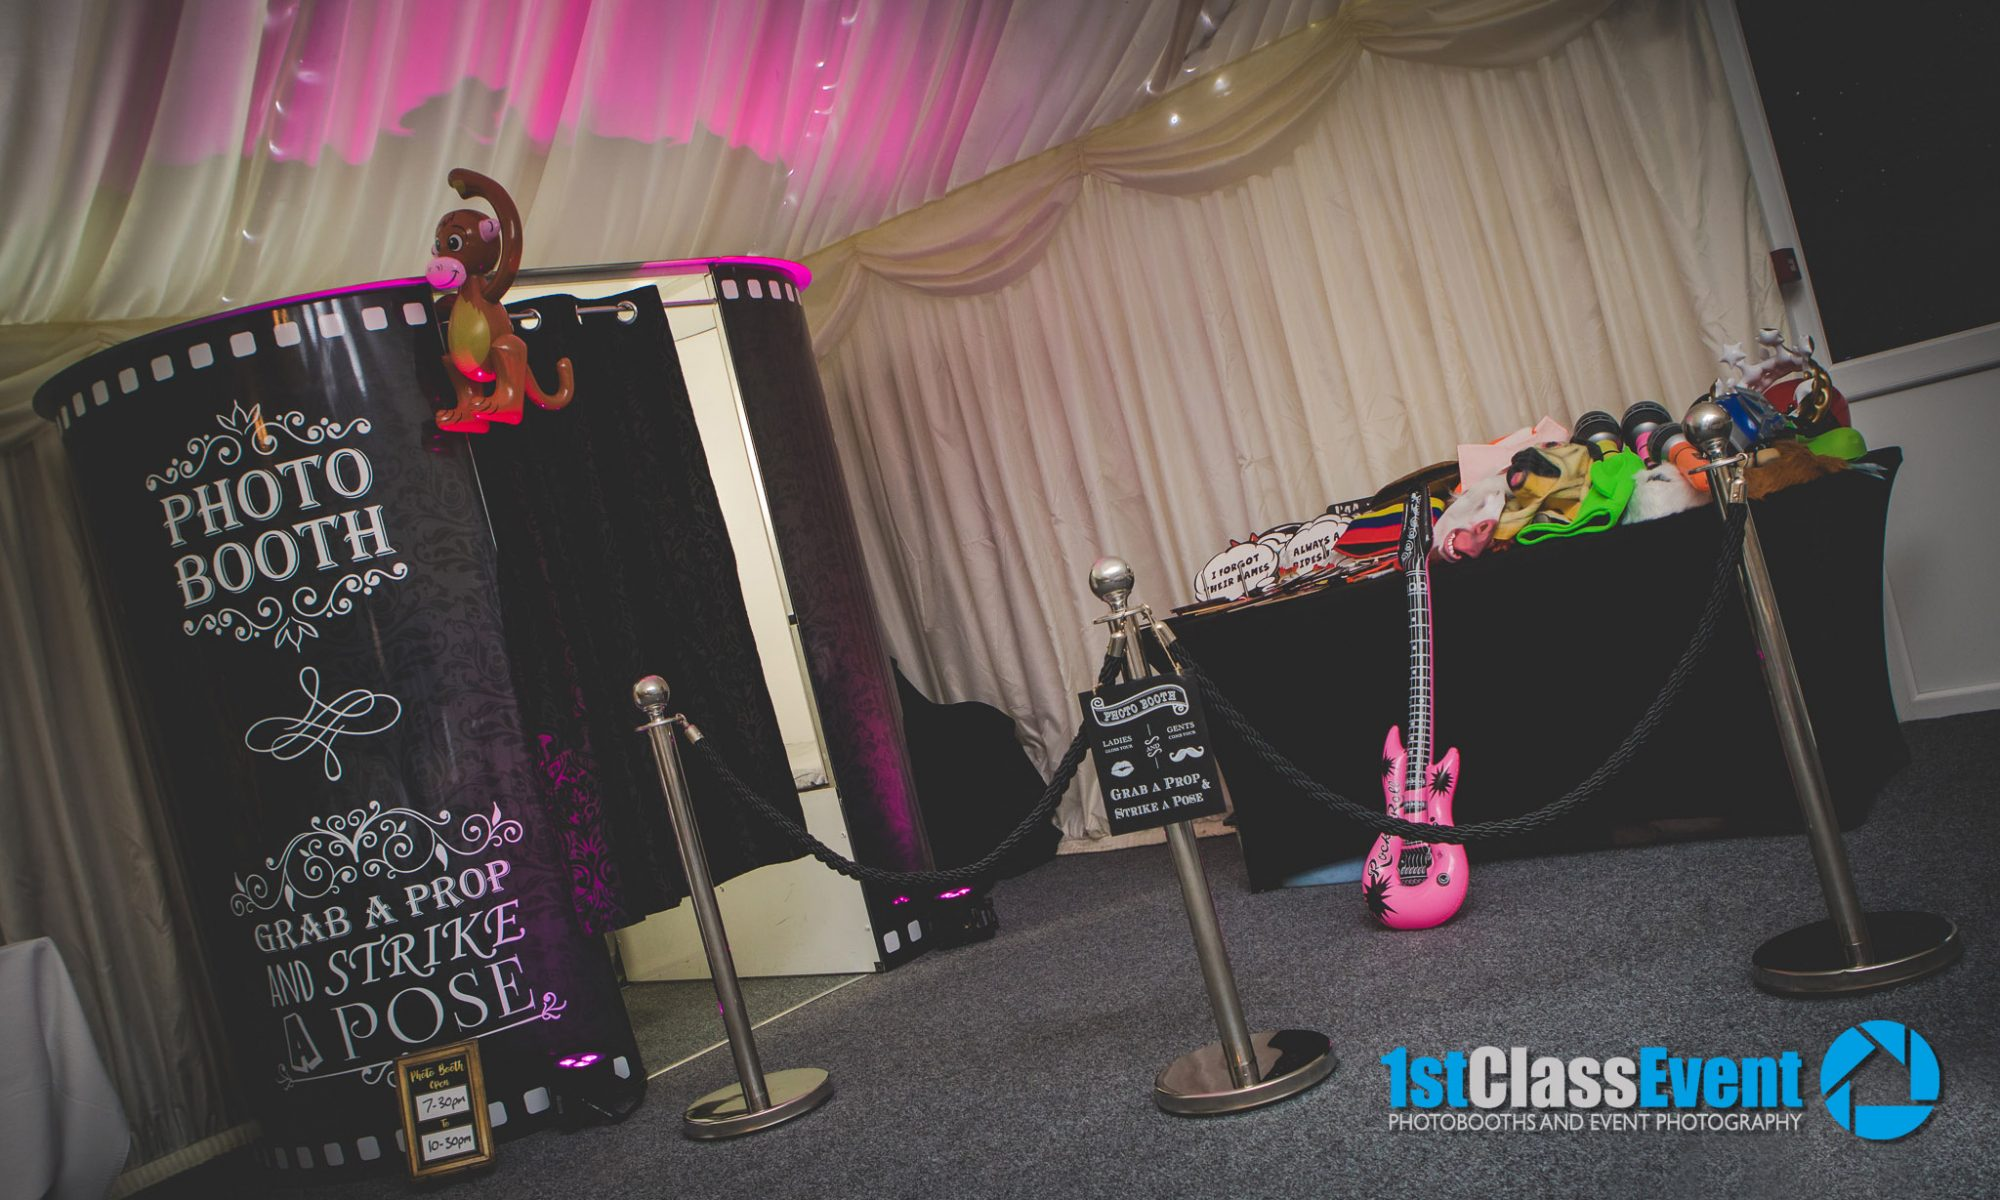 1st Class Event - Premium Quality Photobooths &  Event Photography